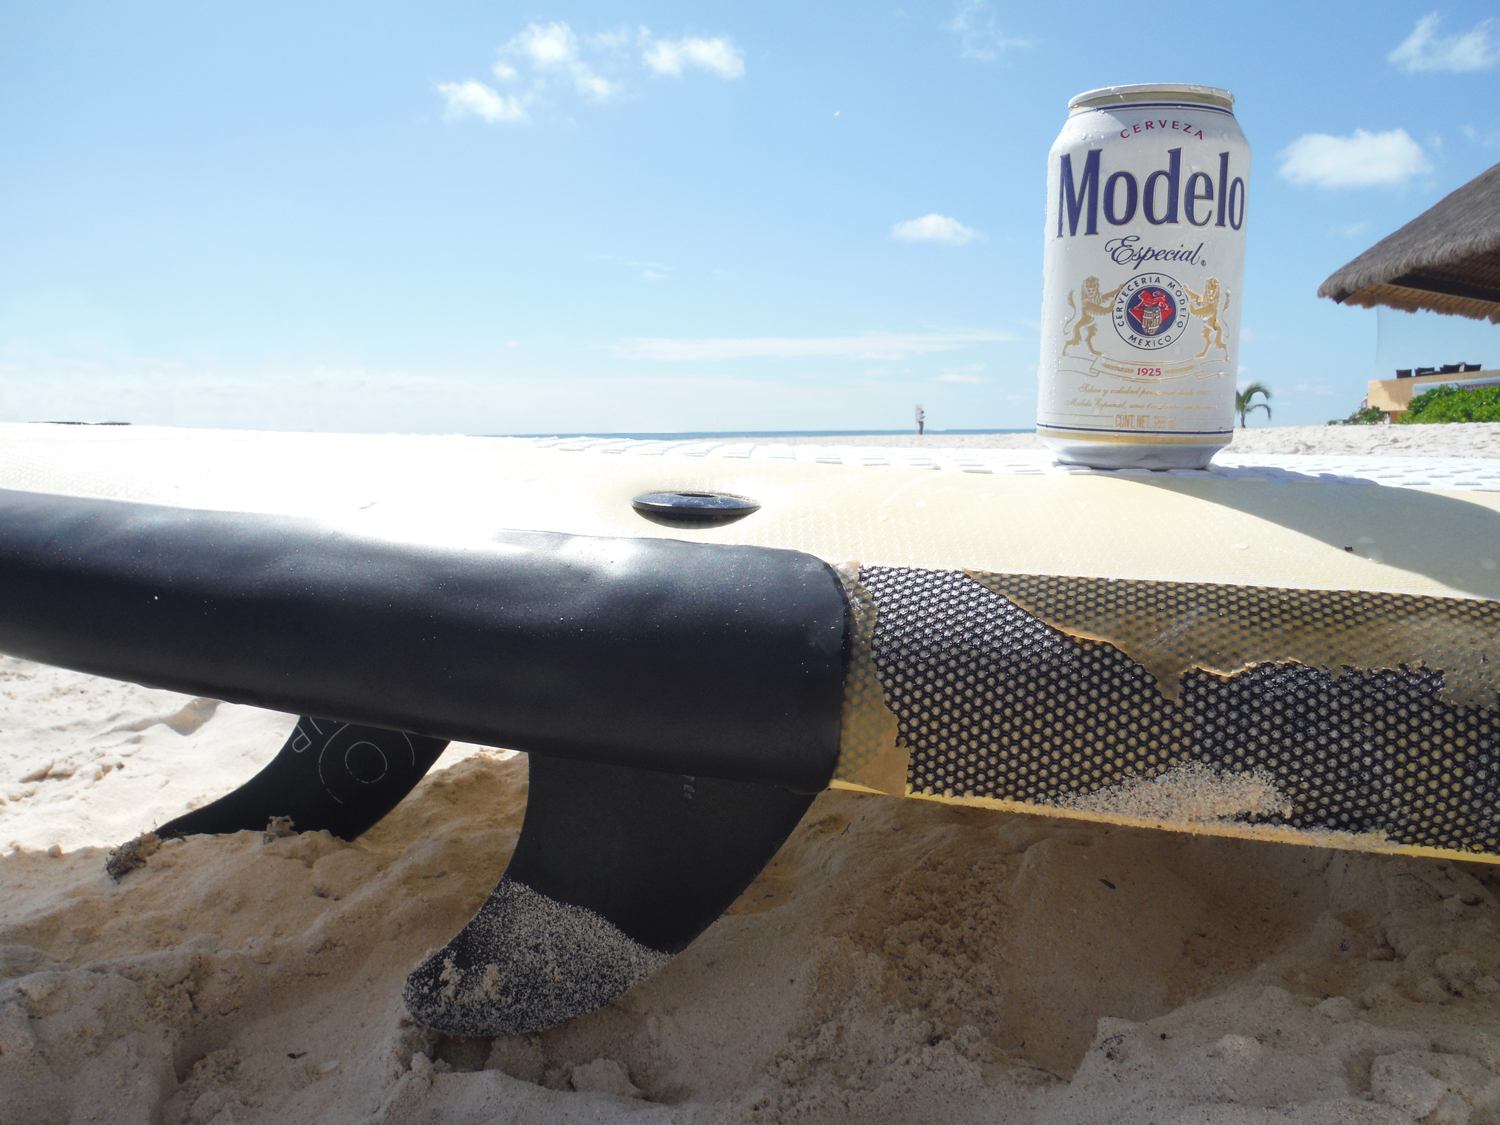 Summer Cerveza of good quality from Modelo Expecial.